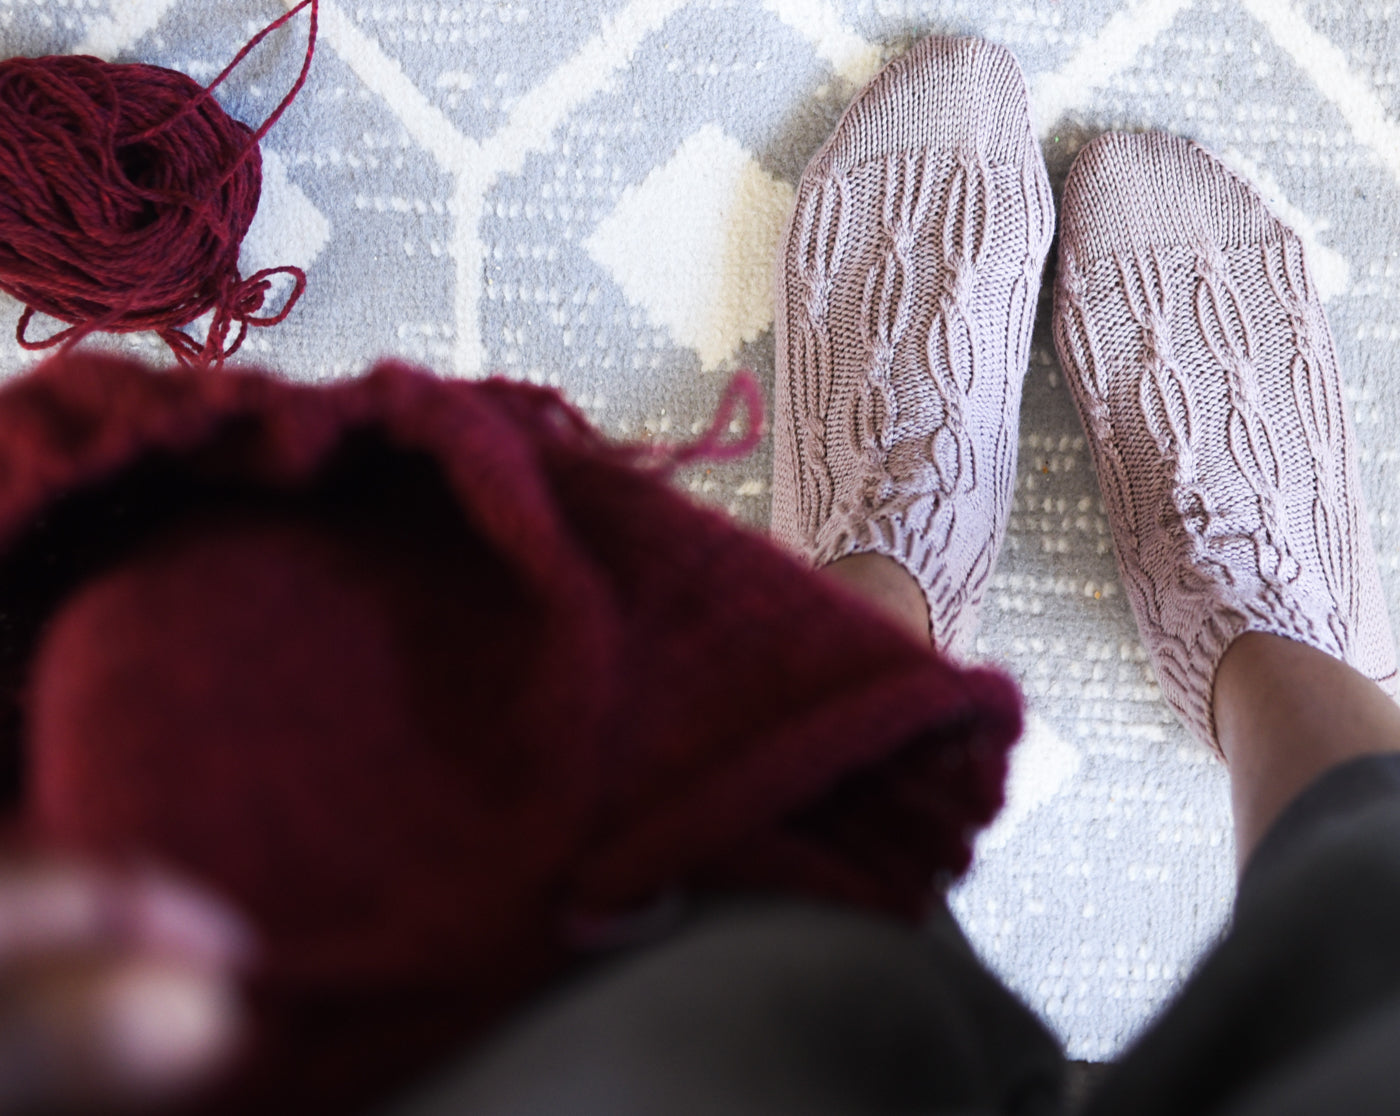 Photograph of looking down at feet showing the cable knitting of the socks.  The background is a blue and white patterned rug.